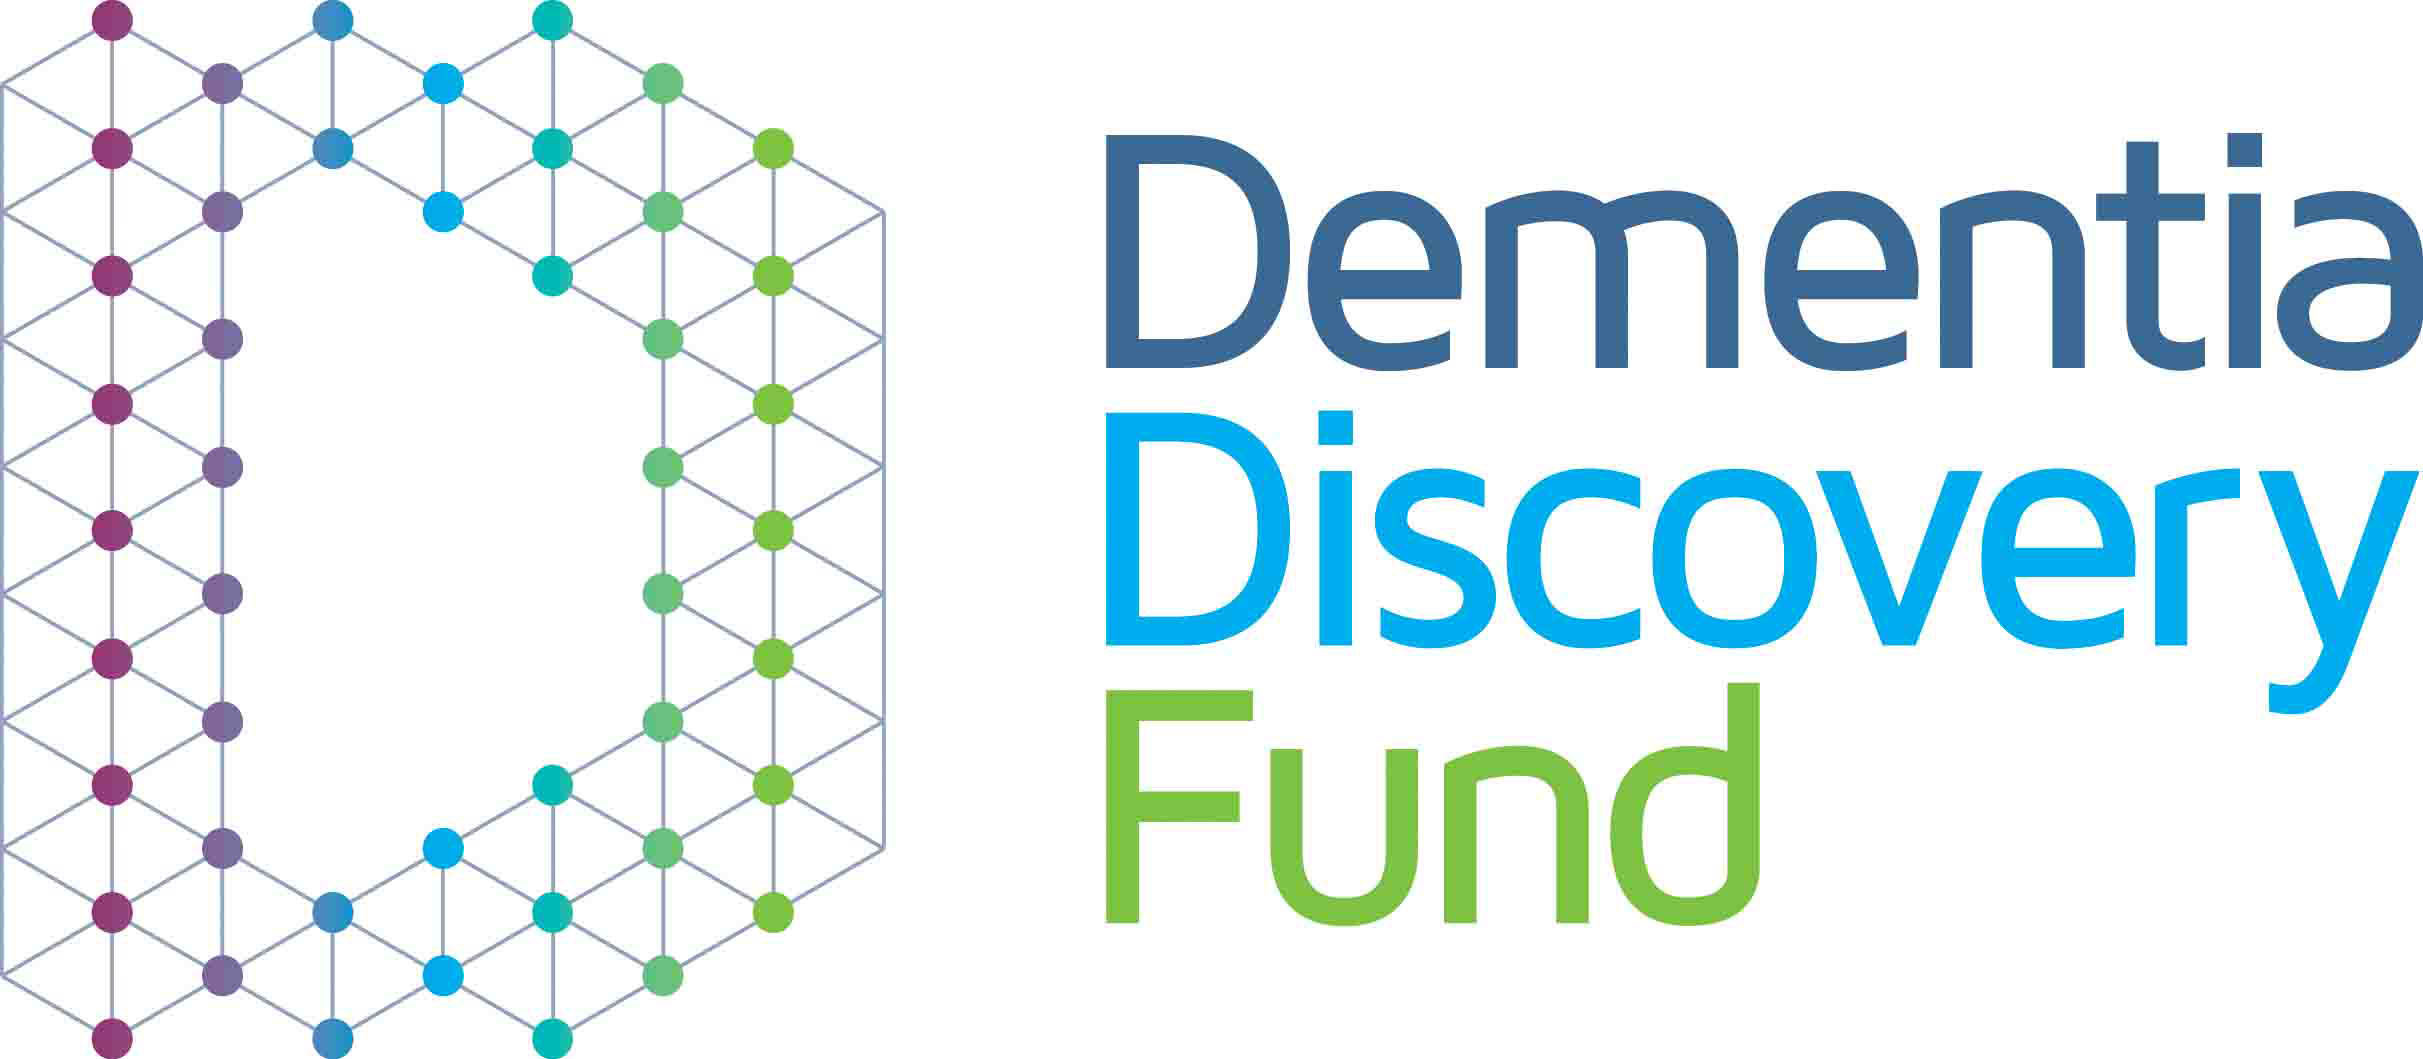 Dementia Discovery Fund to Invest $5 Million in Cerevance to Seek ...